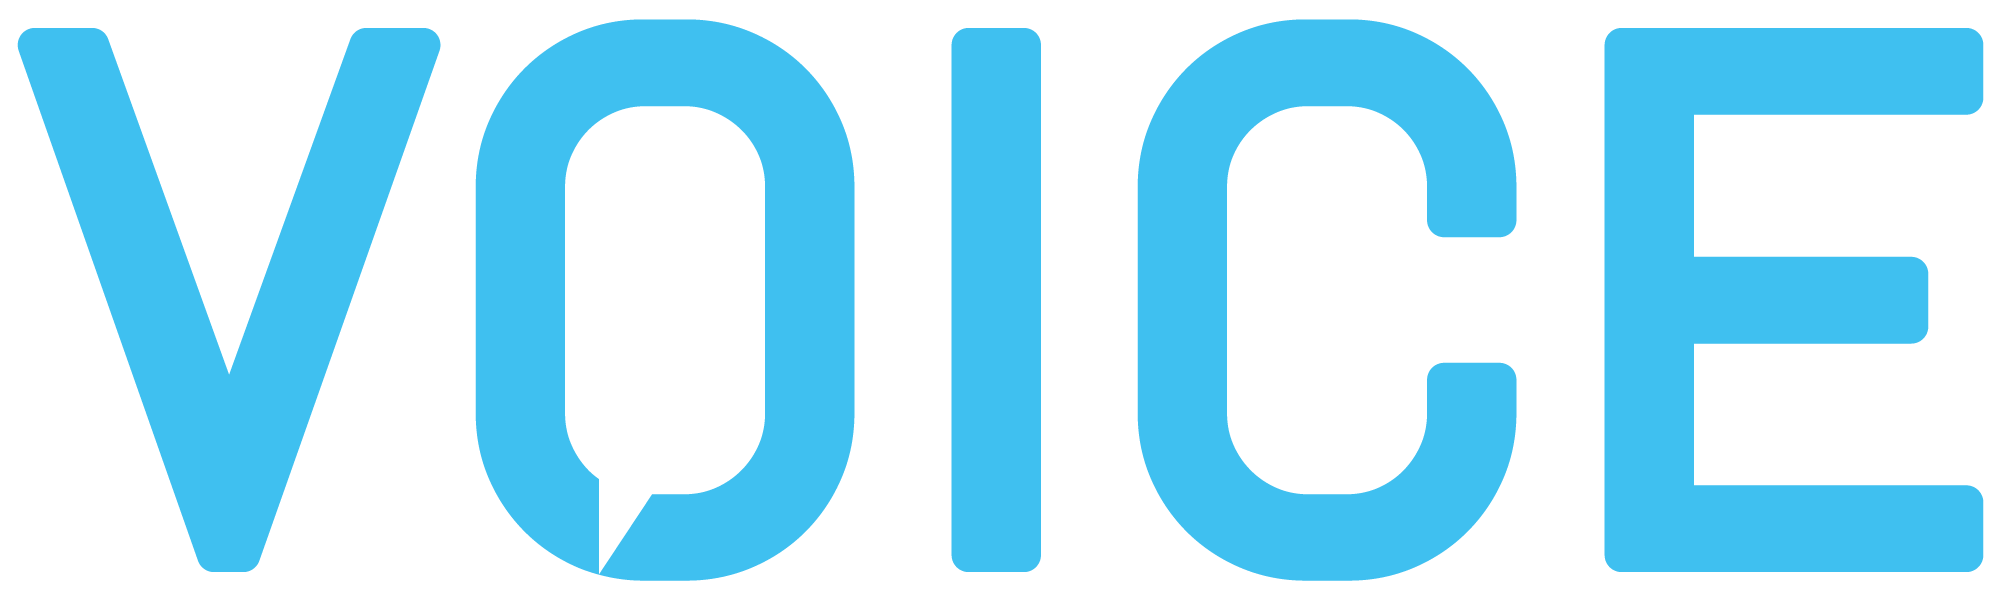 voice_logo_blue_transparent